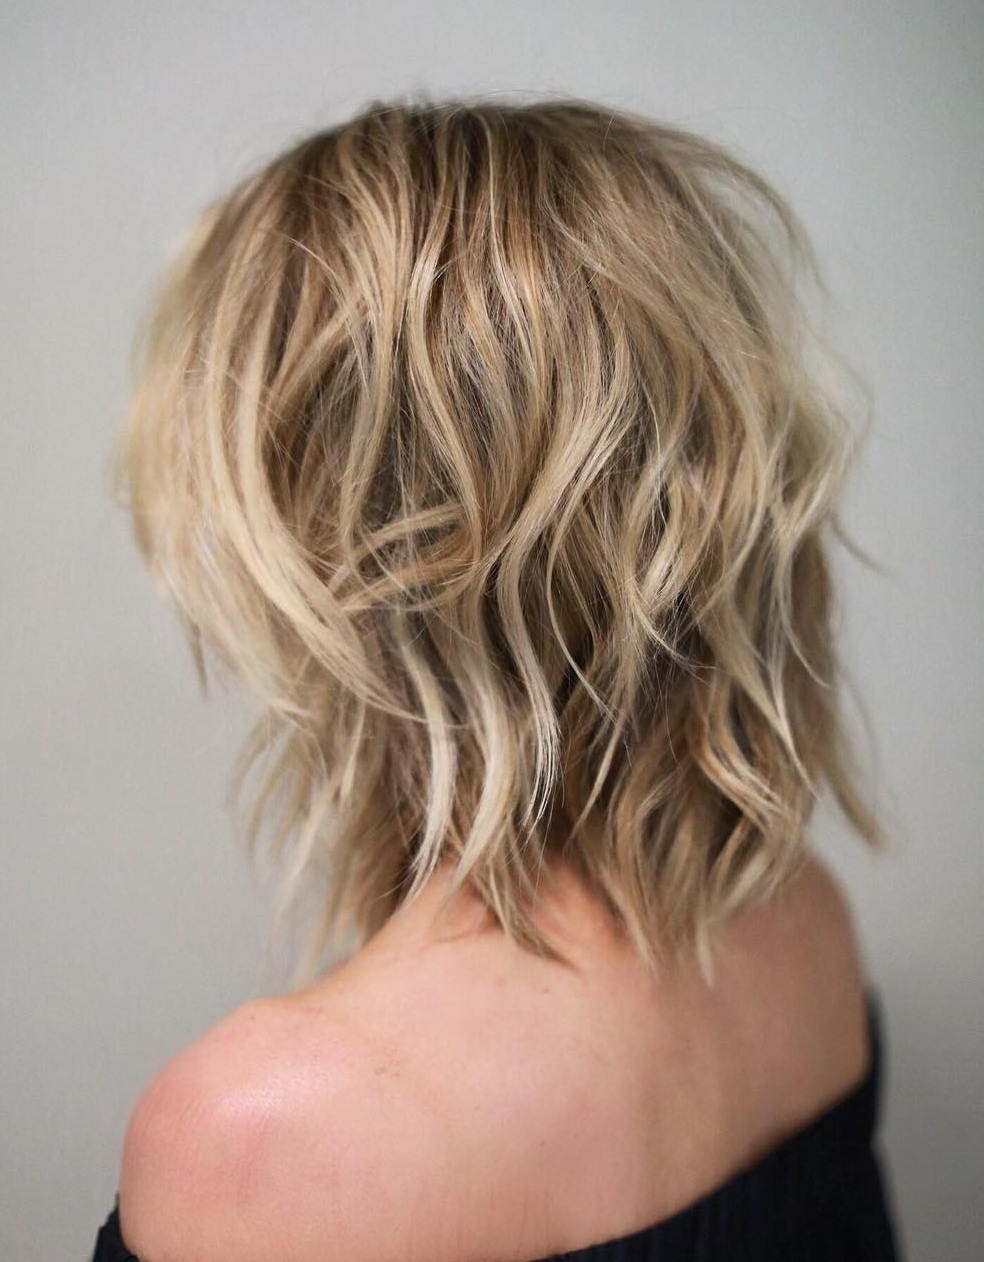 Shag Haircuts And Hairstyles In 2019 — Therighthairstyles Within Most Current Straight Shaggy Locks Long Hairstyles (View 16 of 20)